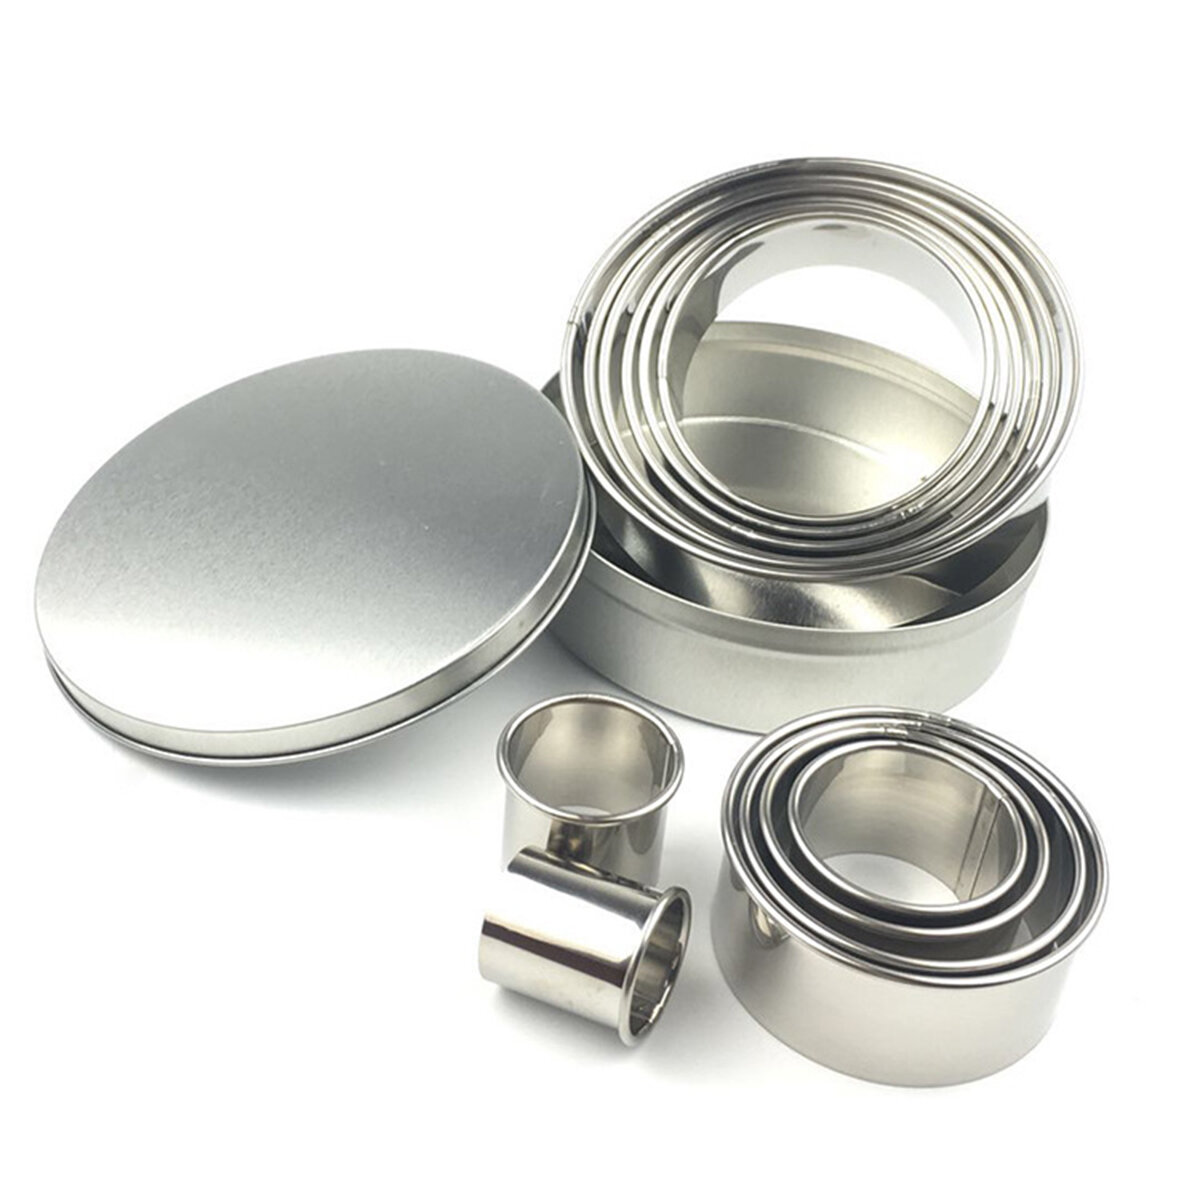 12pcs Stainless Steel Round Cake Biscuit Cookie Cutter Mold Baking Mould Baking Mold фото